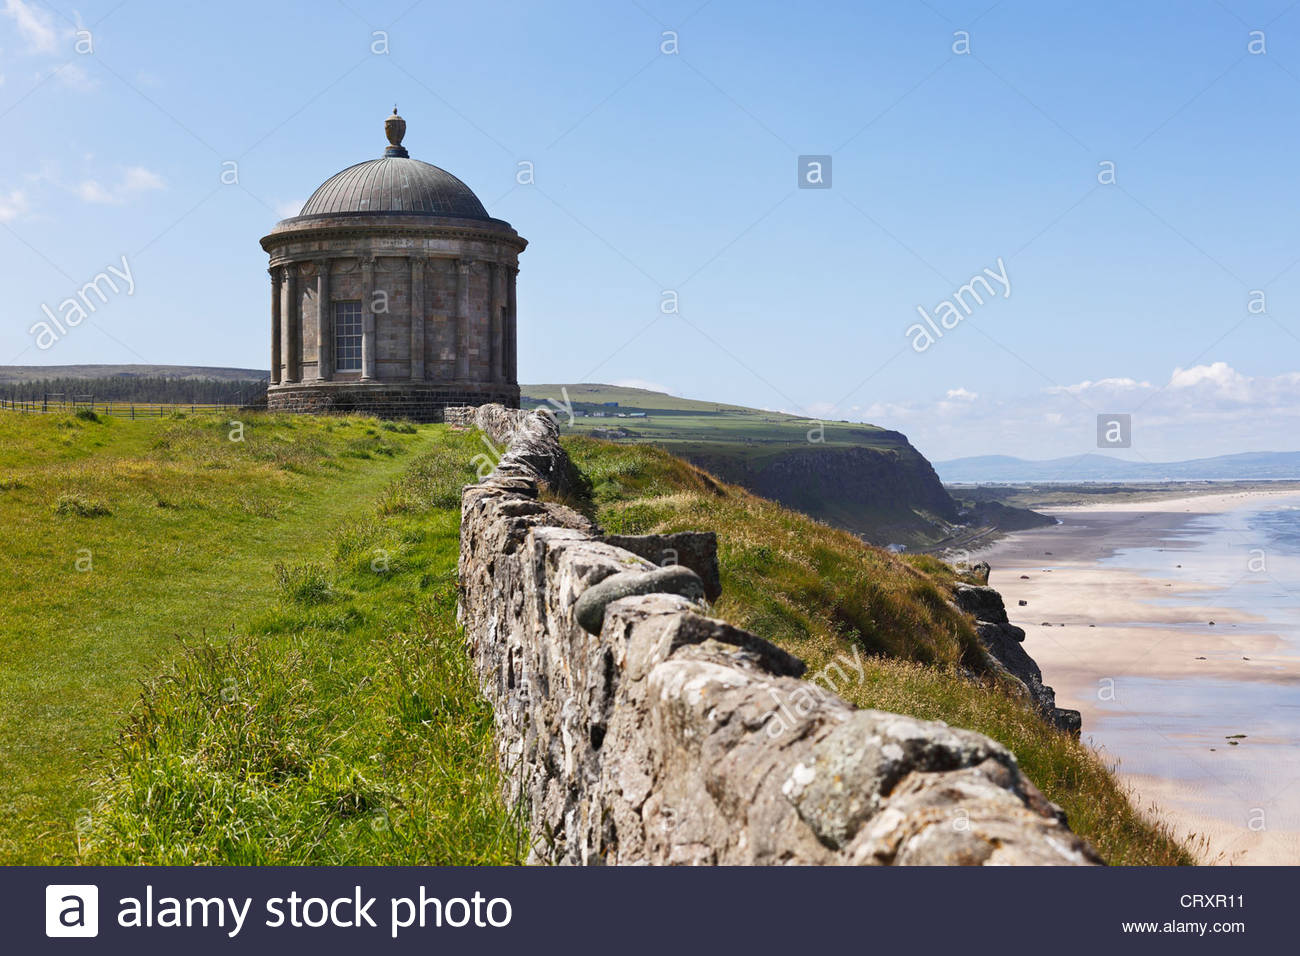 United Kingdom, Northern Ireland, County Derry, View of Mussenden Temple - Stock Image